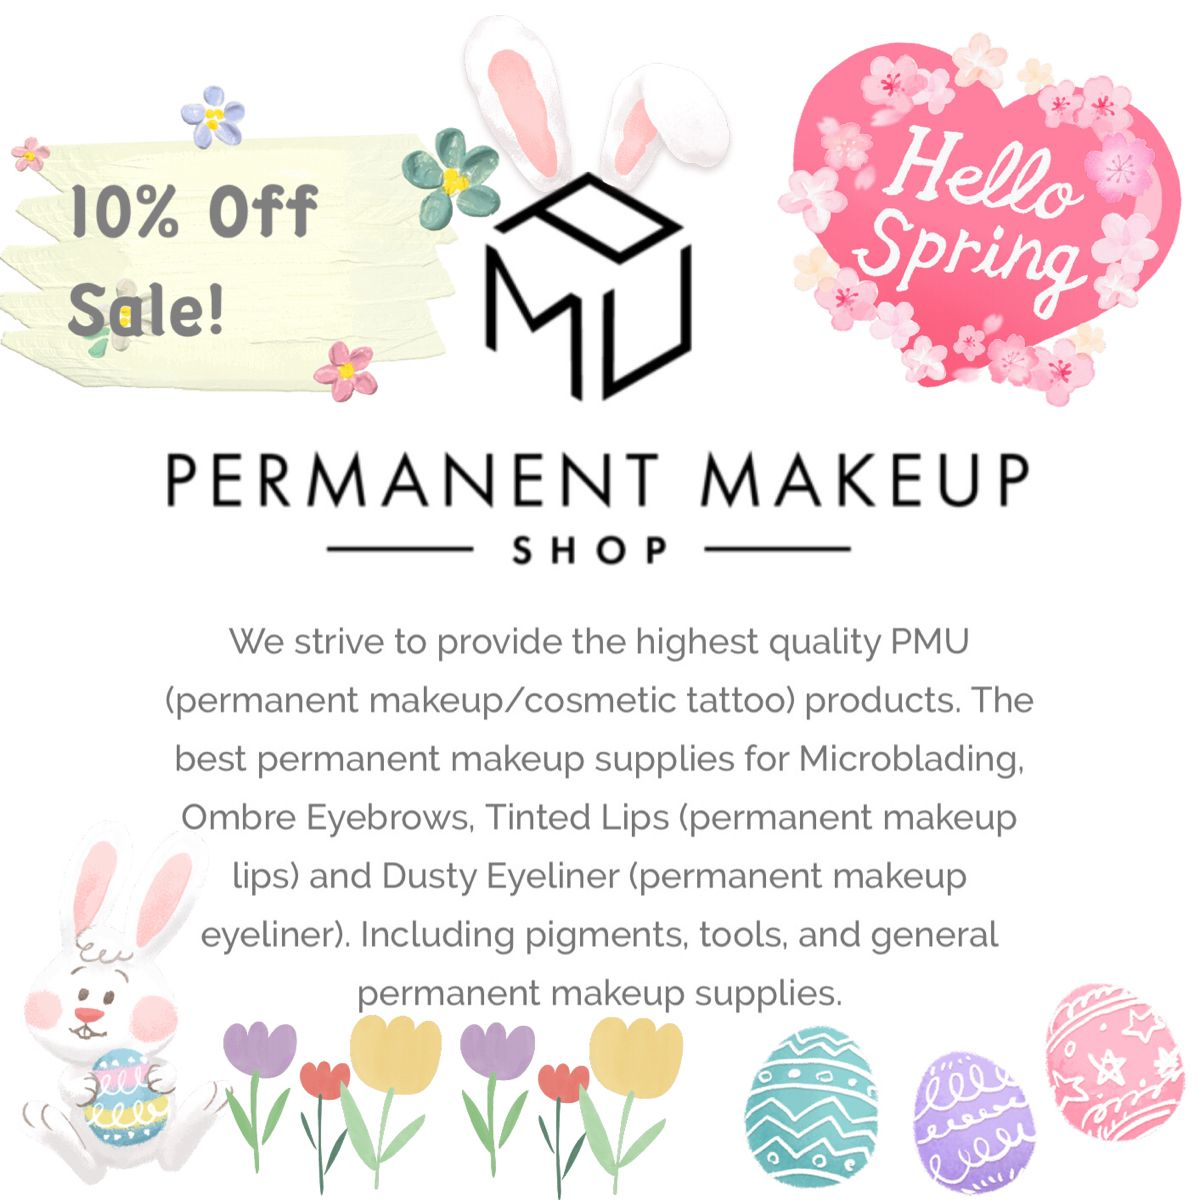 Spring Sale! in 2020 Permanent makeup cosmetics